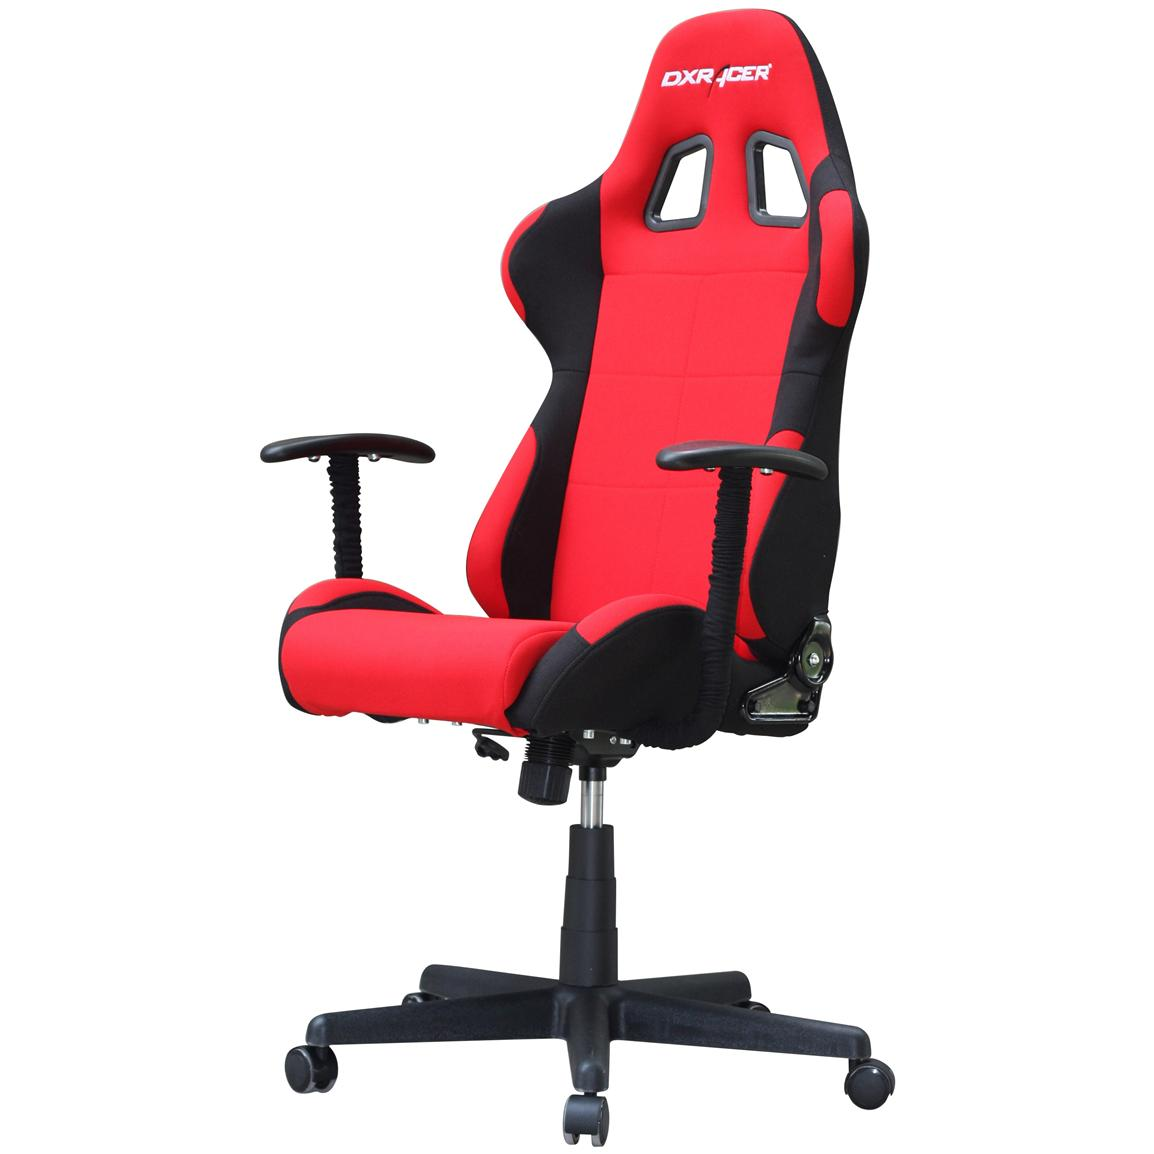 custom gaming chairs exercise chair on tv console s270505700605019941 p2 i3 w1154 jpeg